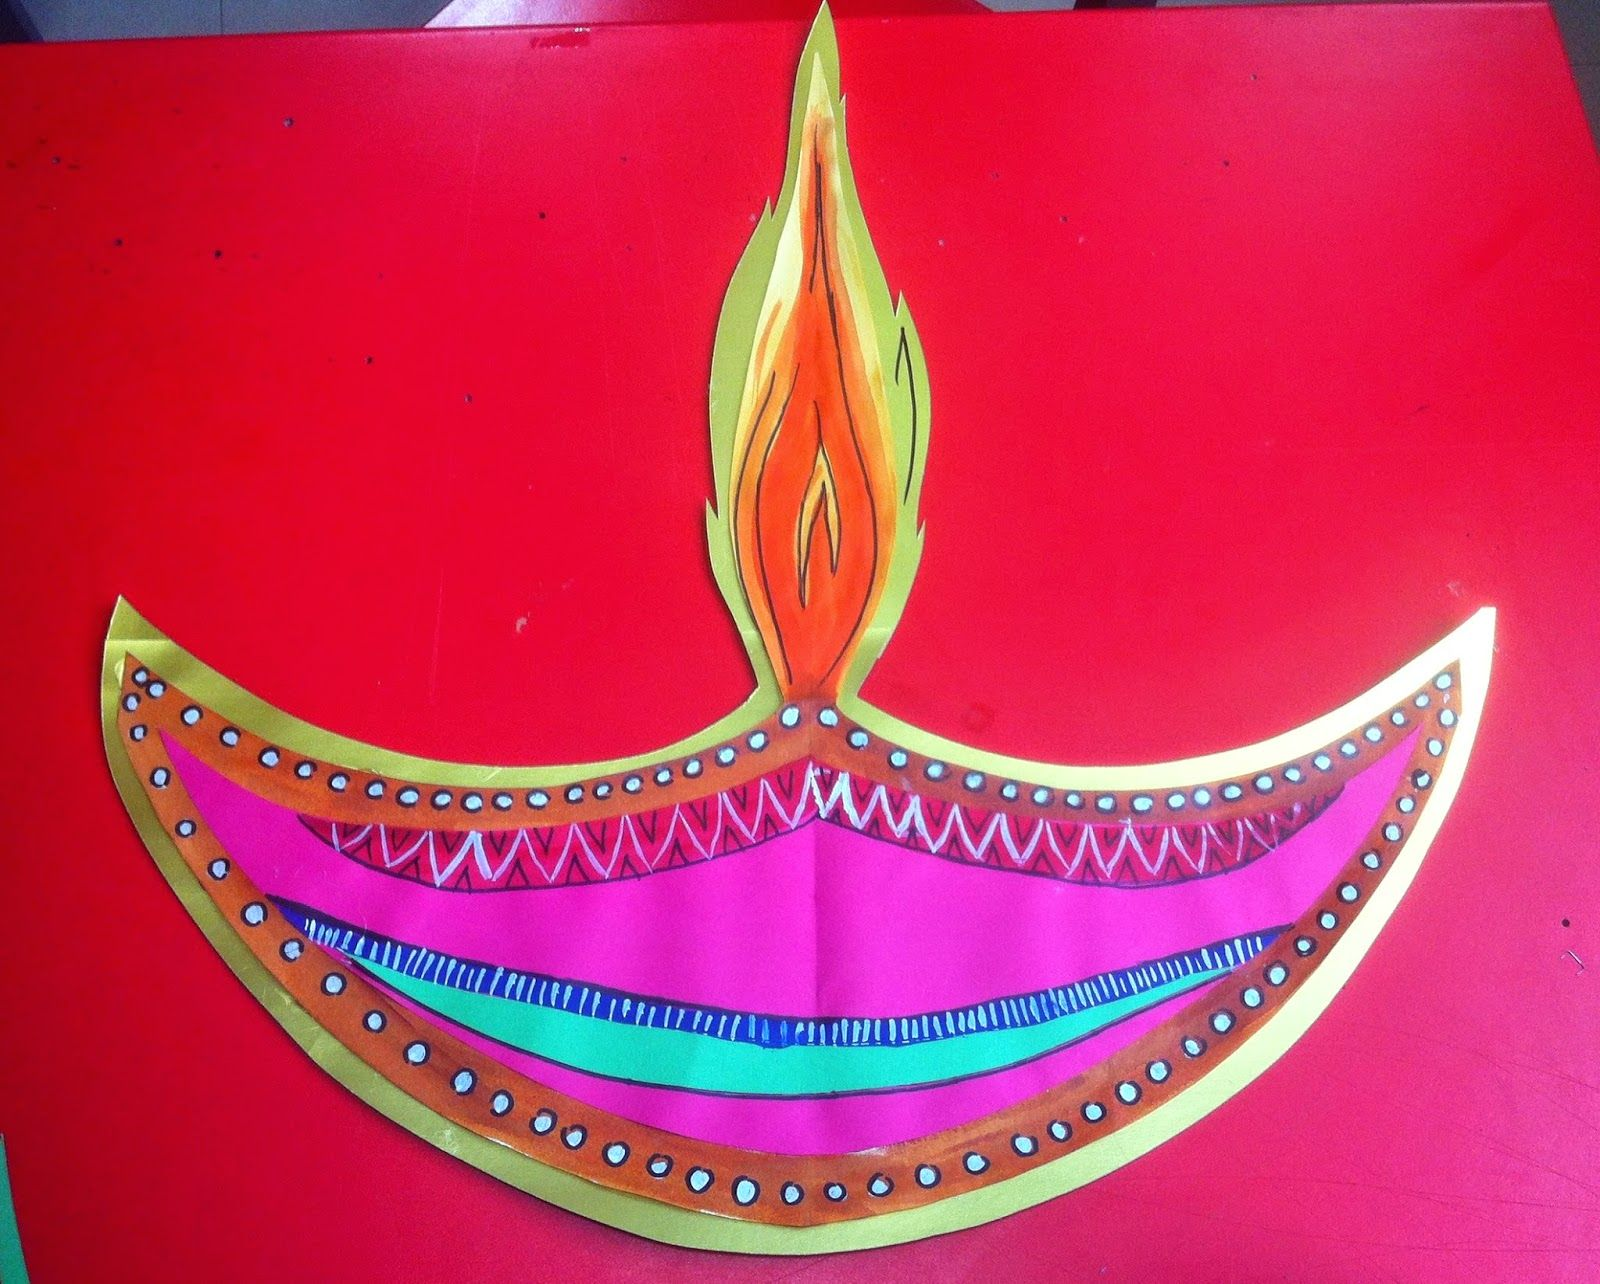 Art craft ideas and bulletin boards for elementary schools vegetable - Art Craft Ideas And Bulletin Boards For Elementary Schools Diwali Diya Design For Cards